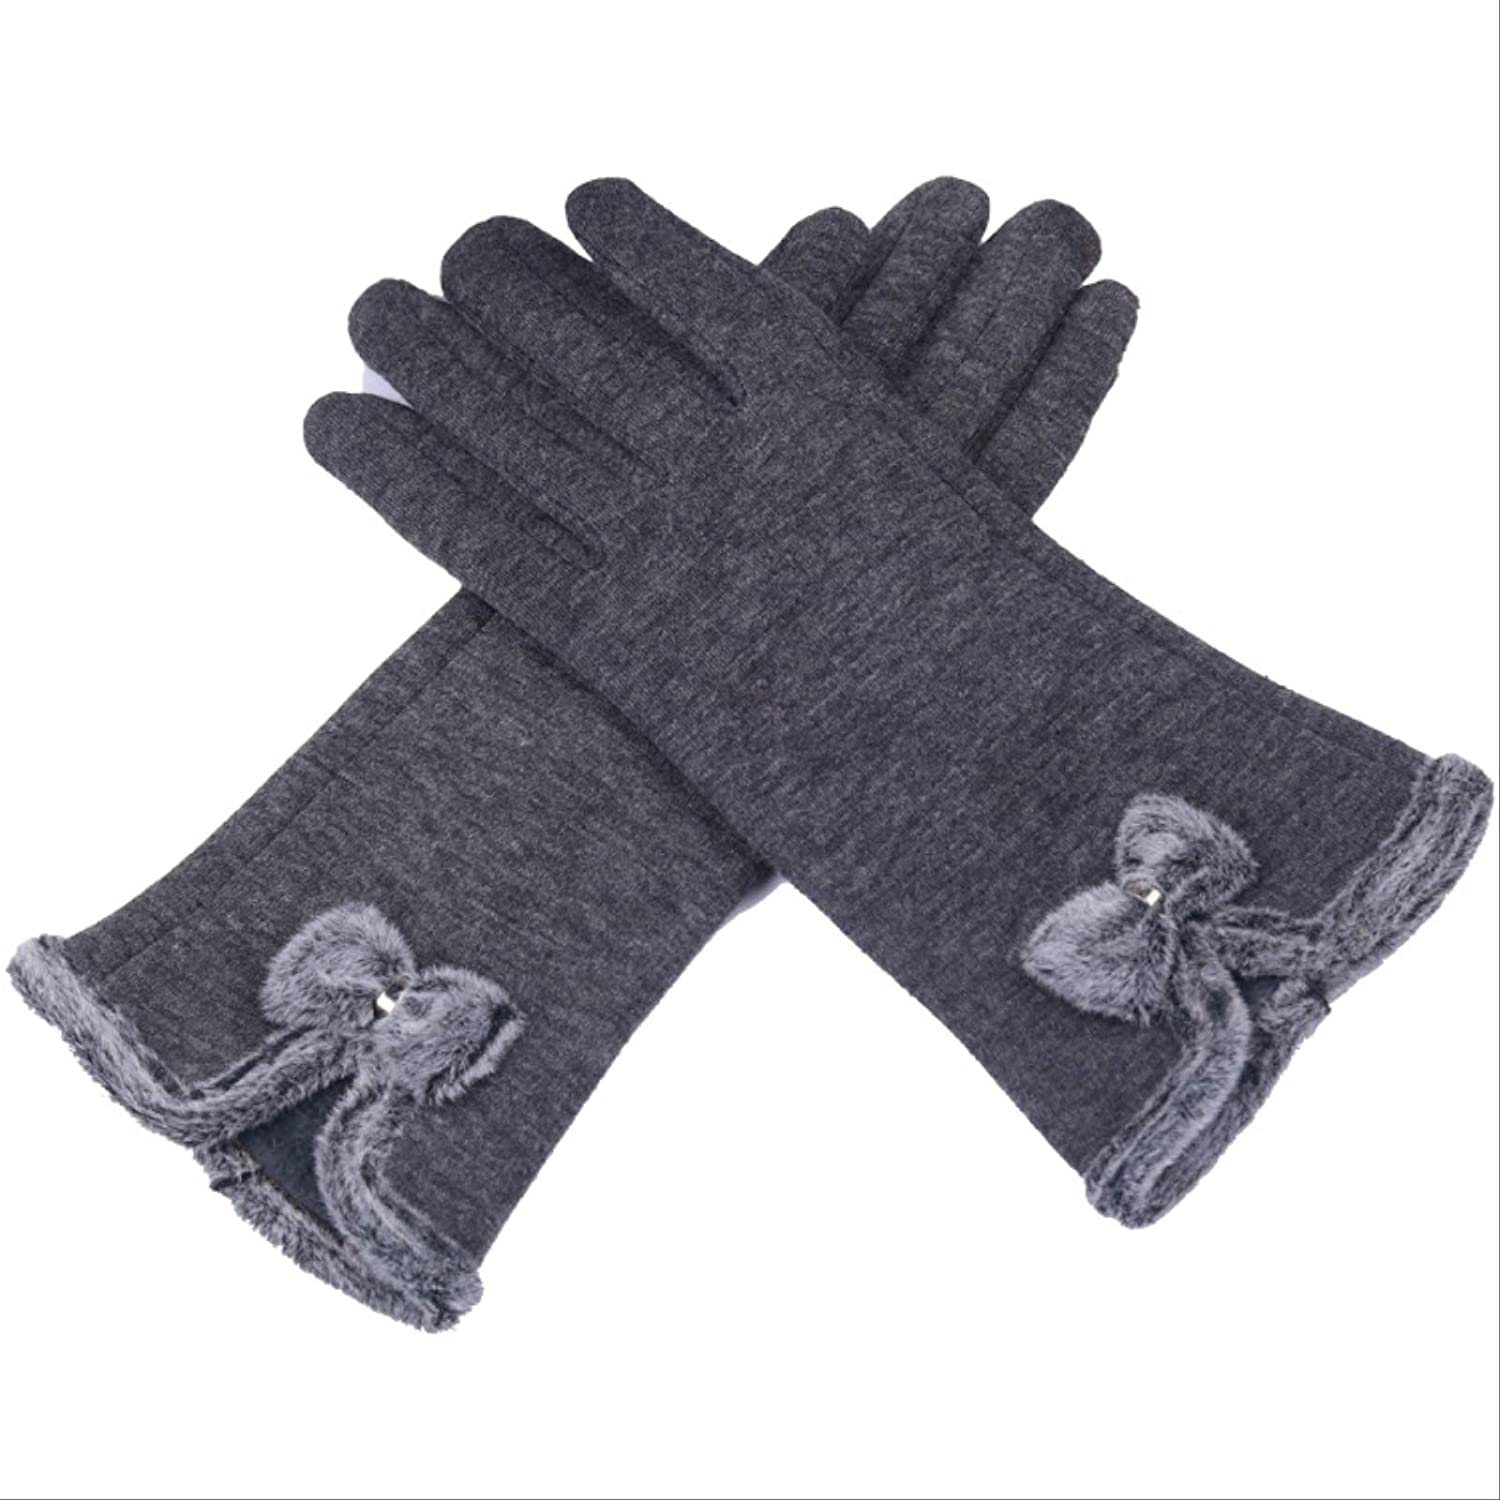 HIWKX Gloves Touch Screen Women's Gloves Knitted Double-Layer Padded Warm and Comfortable